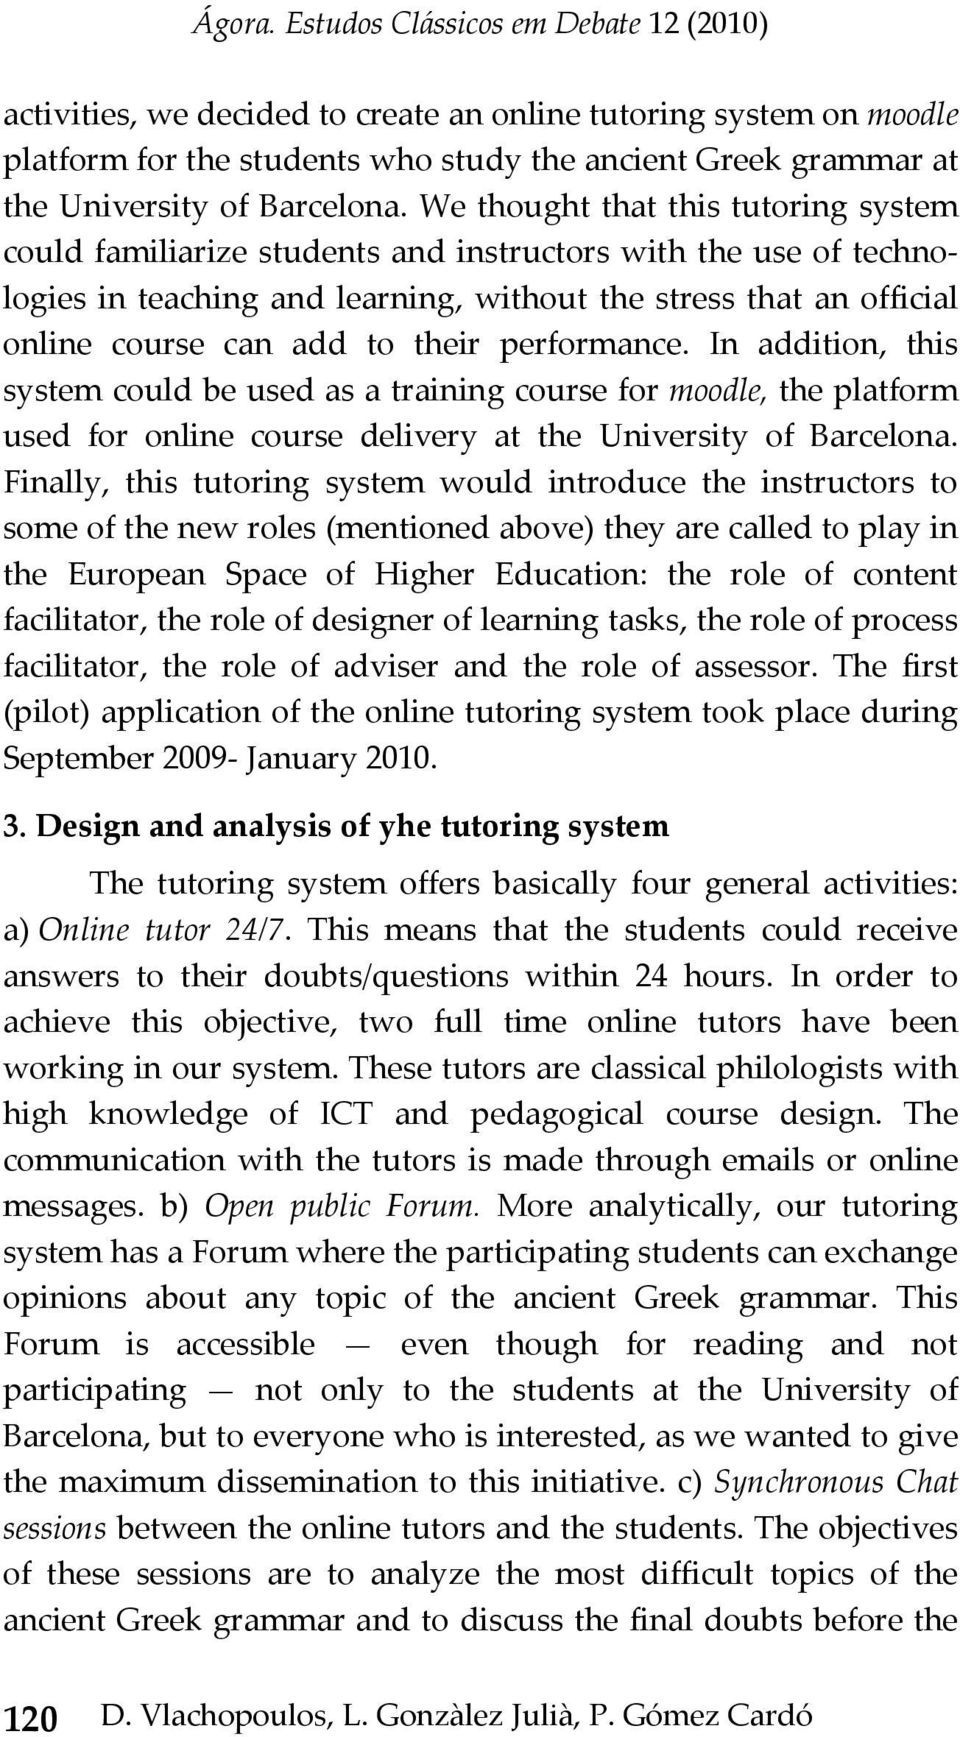 their performance. In addition, this system could be used as a training course for moodle, the platform used for online course delivery at the University of Barcelona.